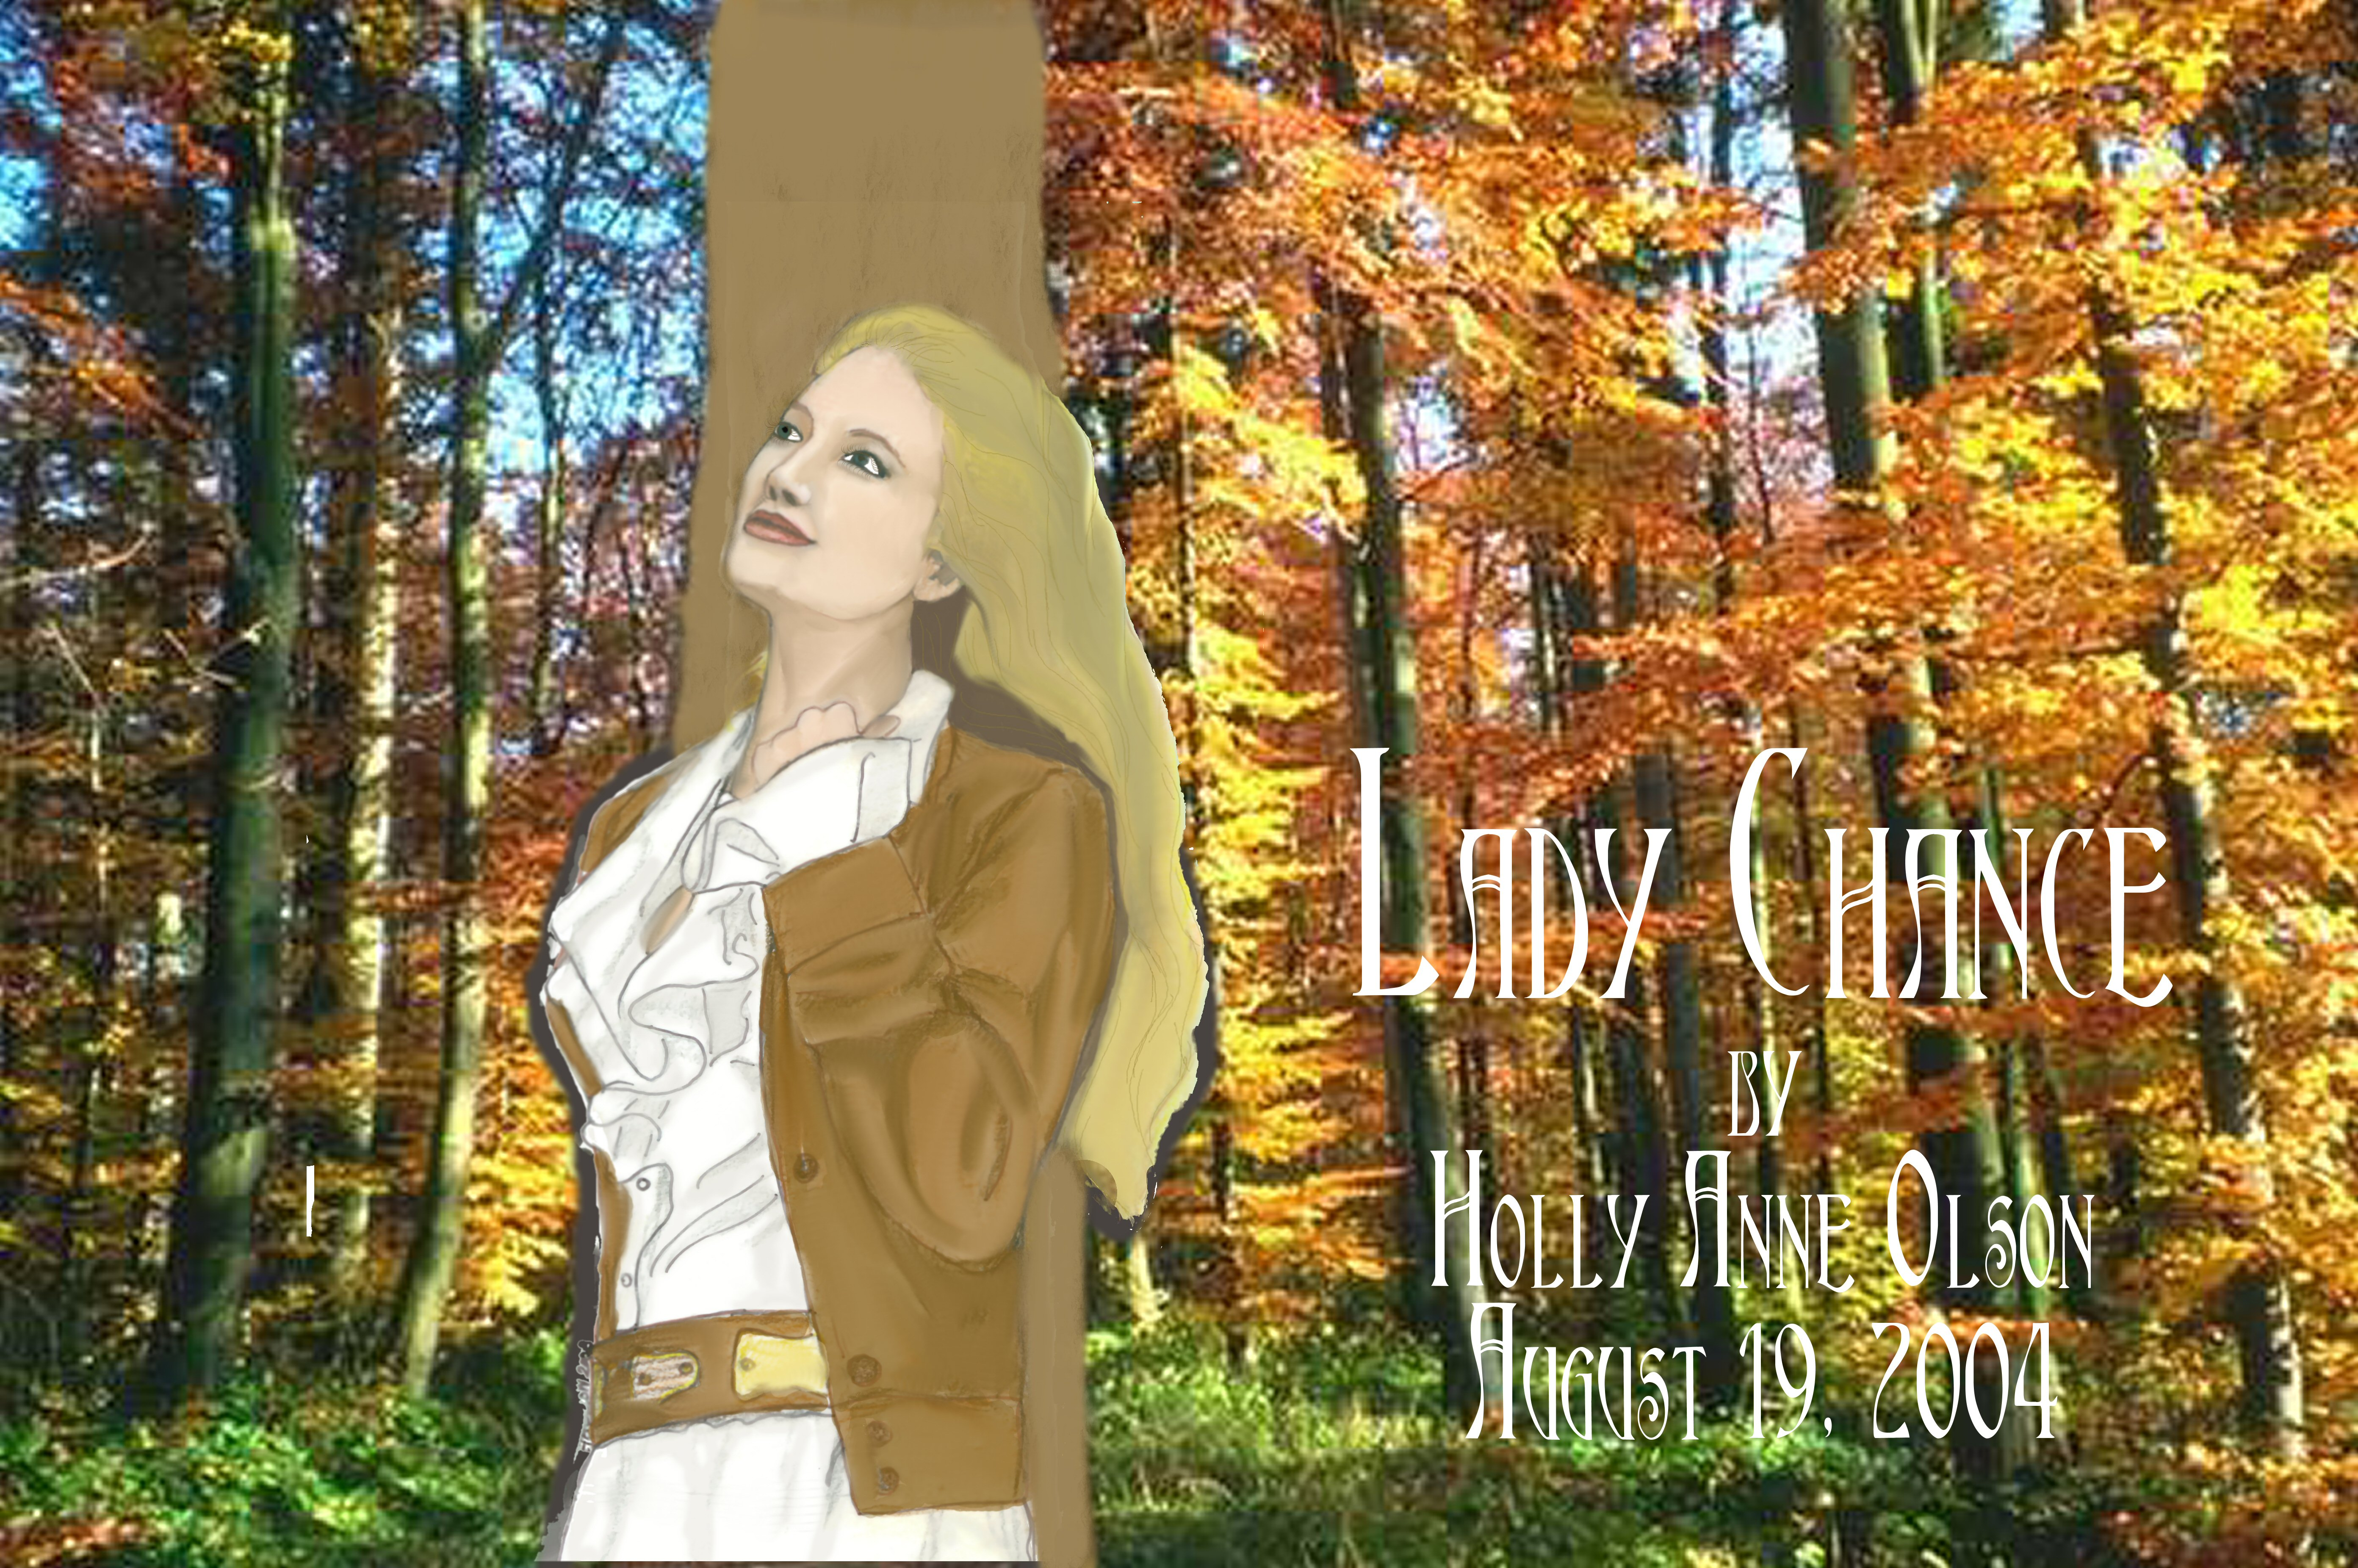 lady_chance_in_the_woods001.jpg